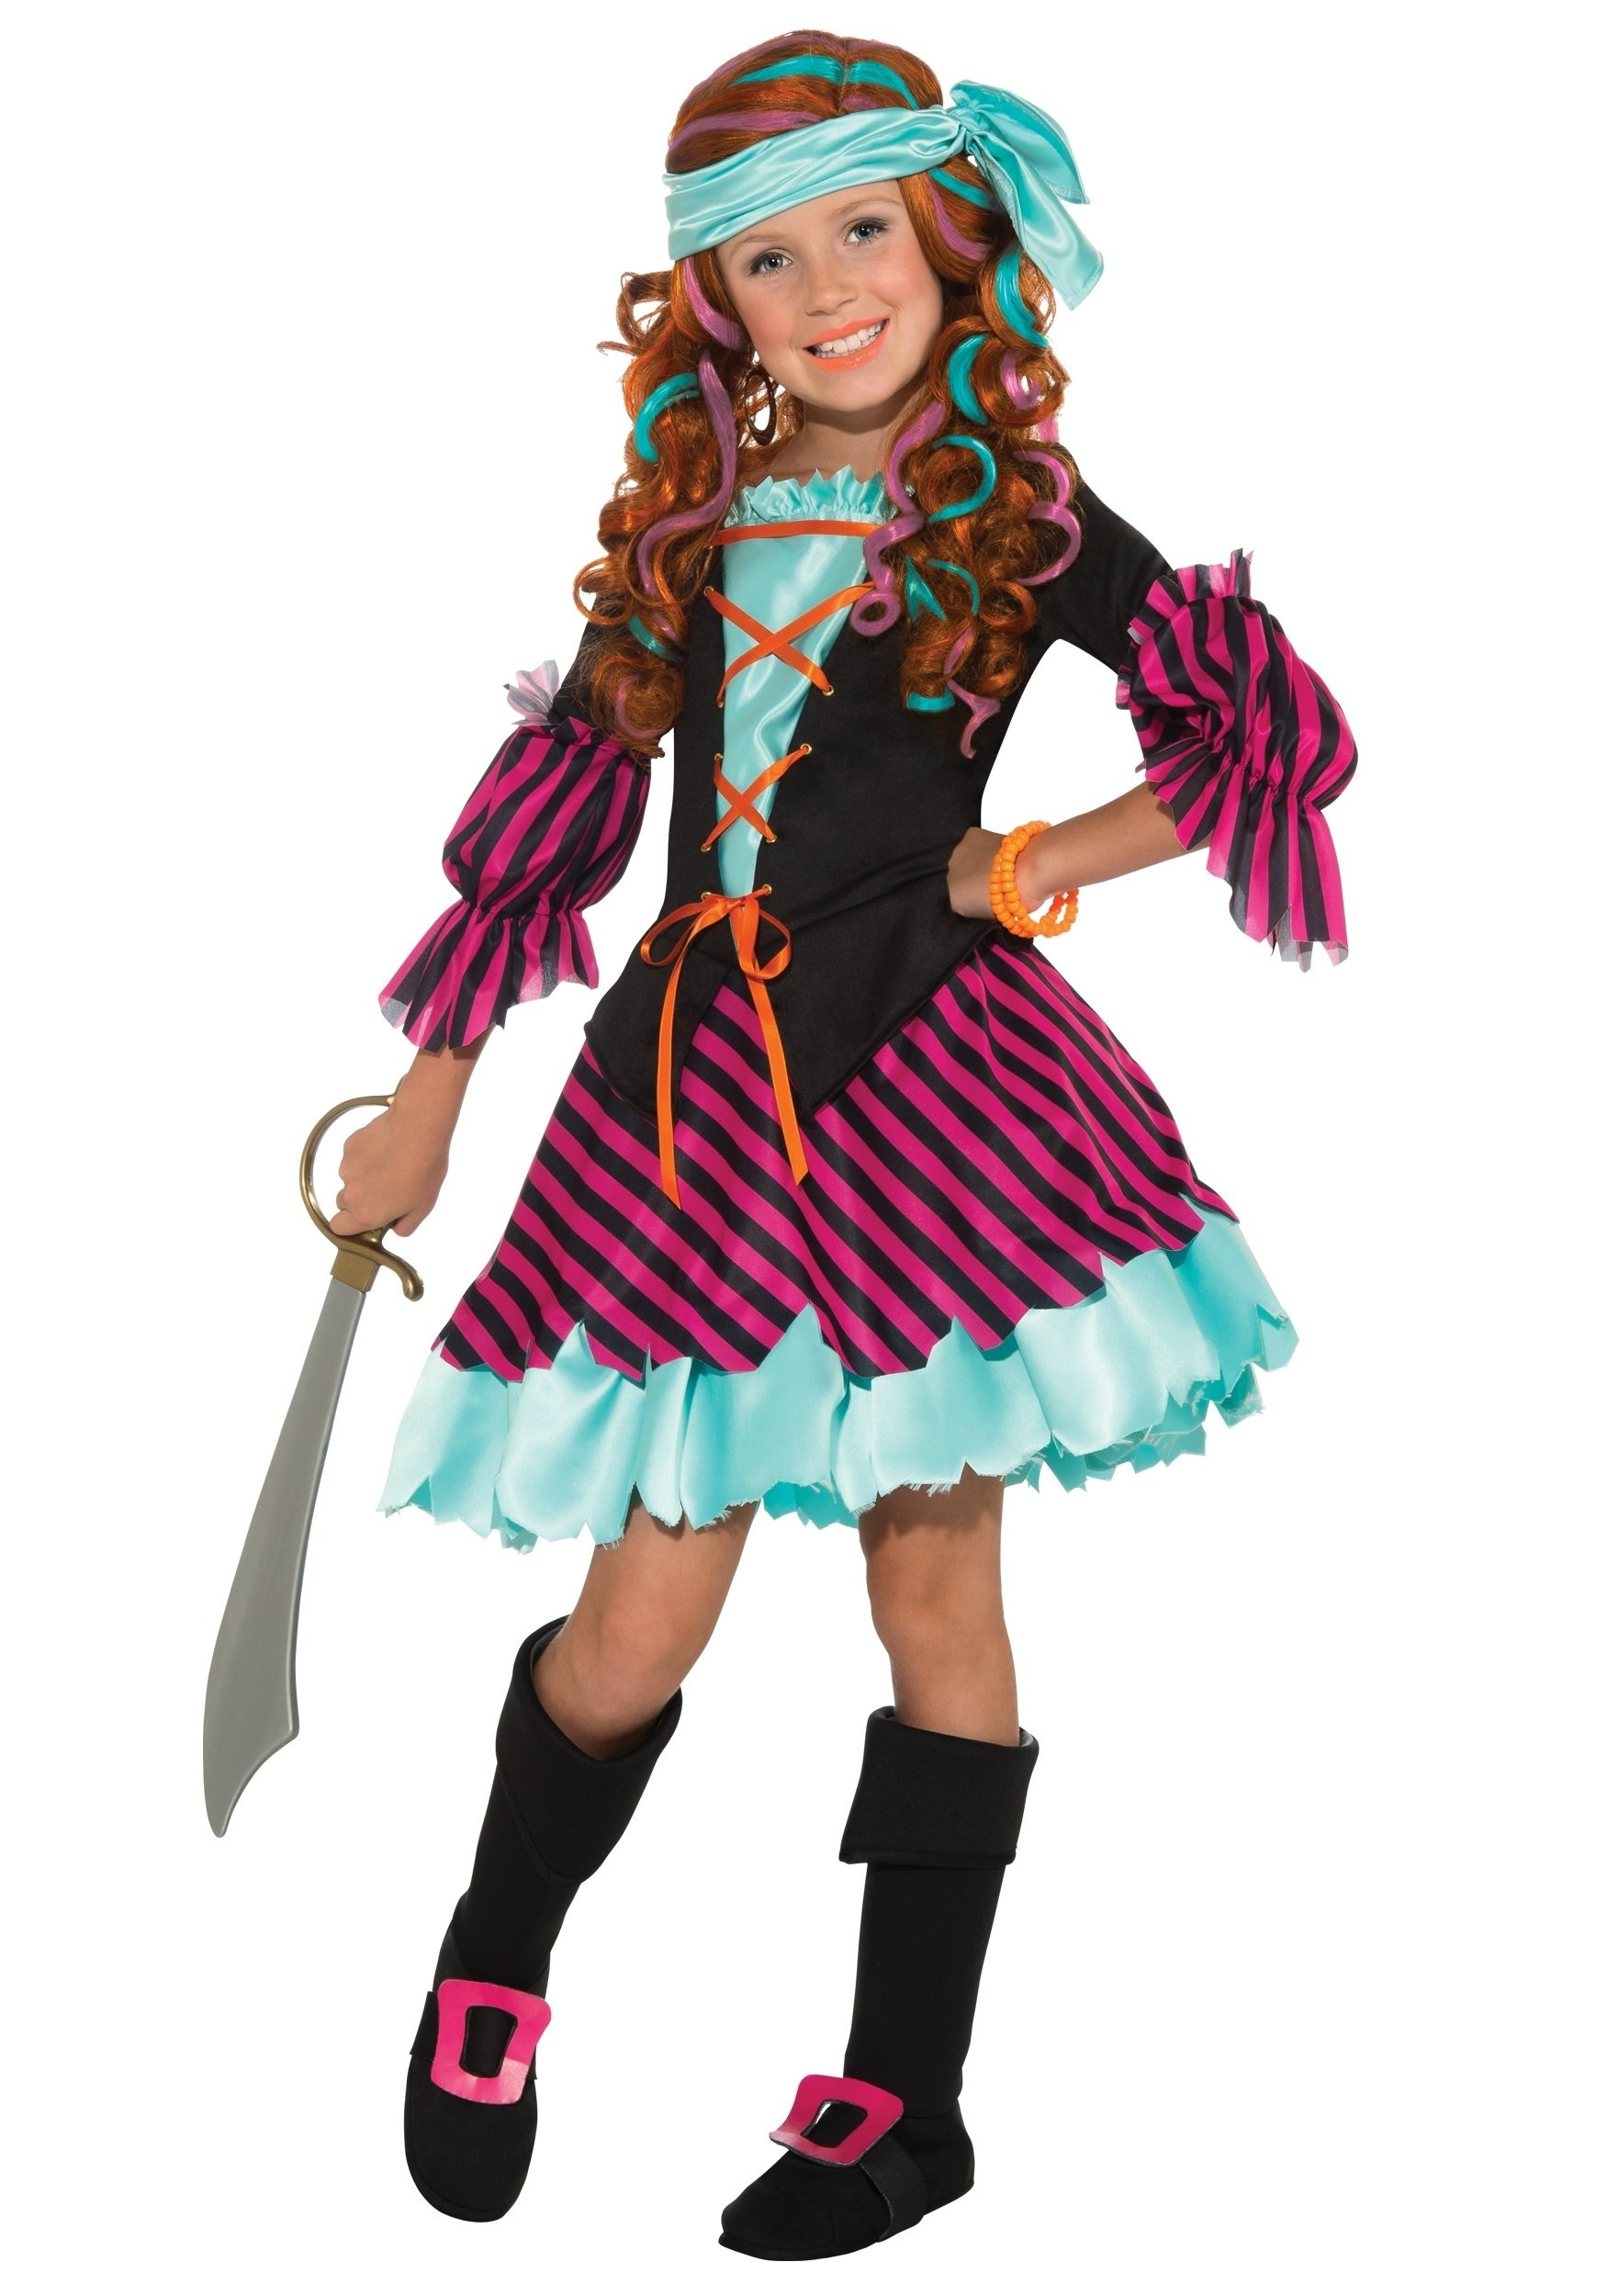 10 Nice Ideas For Halloween Costumes For Girls salty taffy girls pirate costume 2020